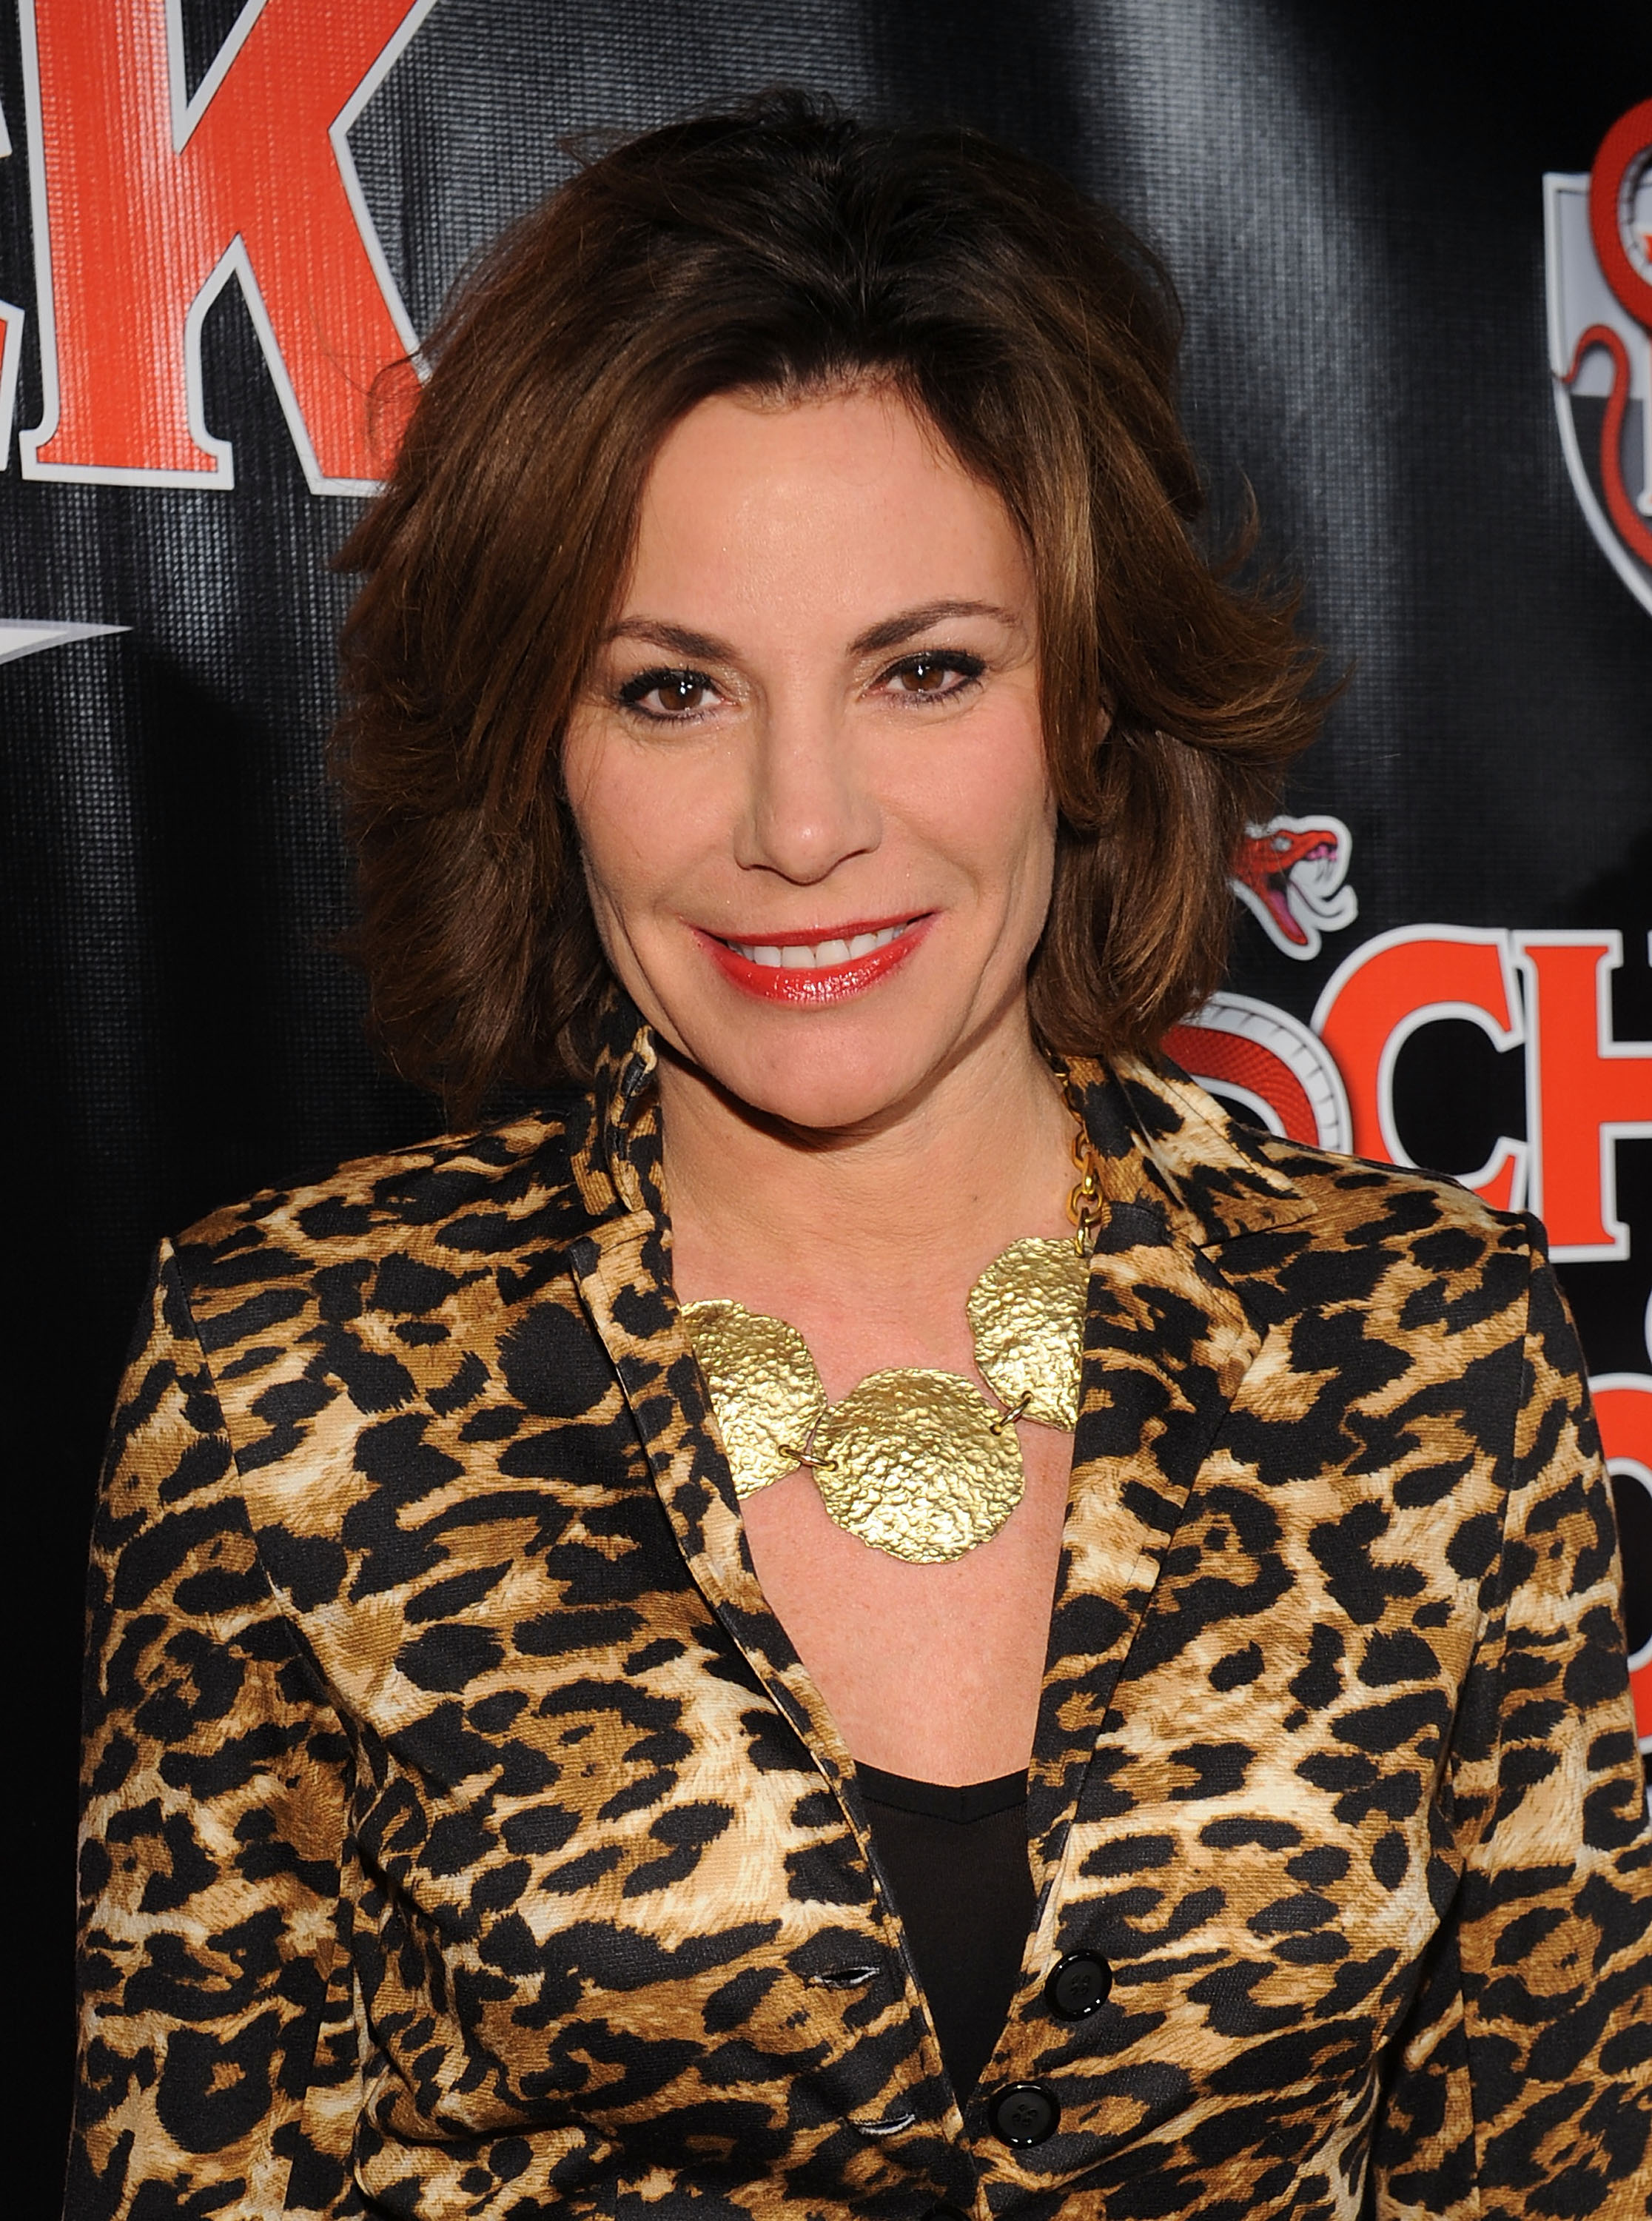 Luann de Lesseps nudes (73 foto and video), Ass, Cleavage, Twitter, bra 2006